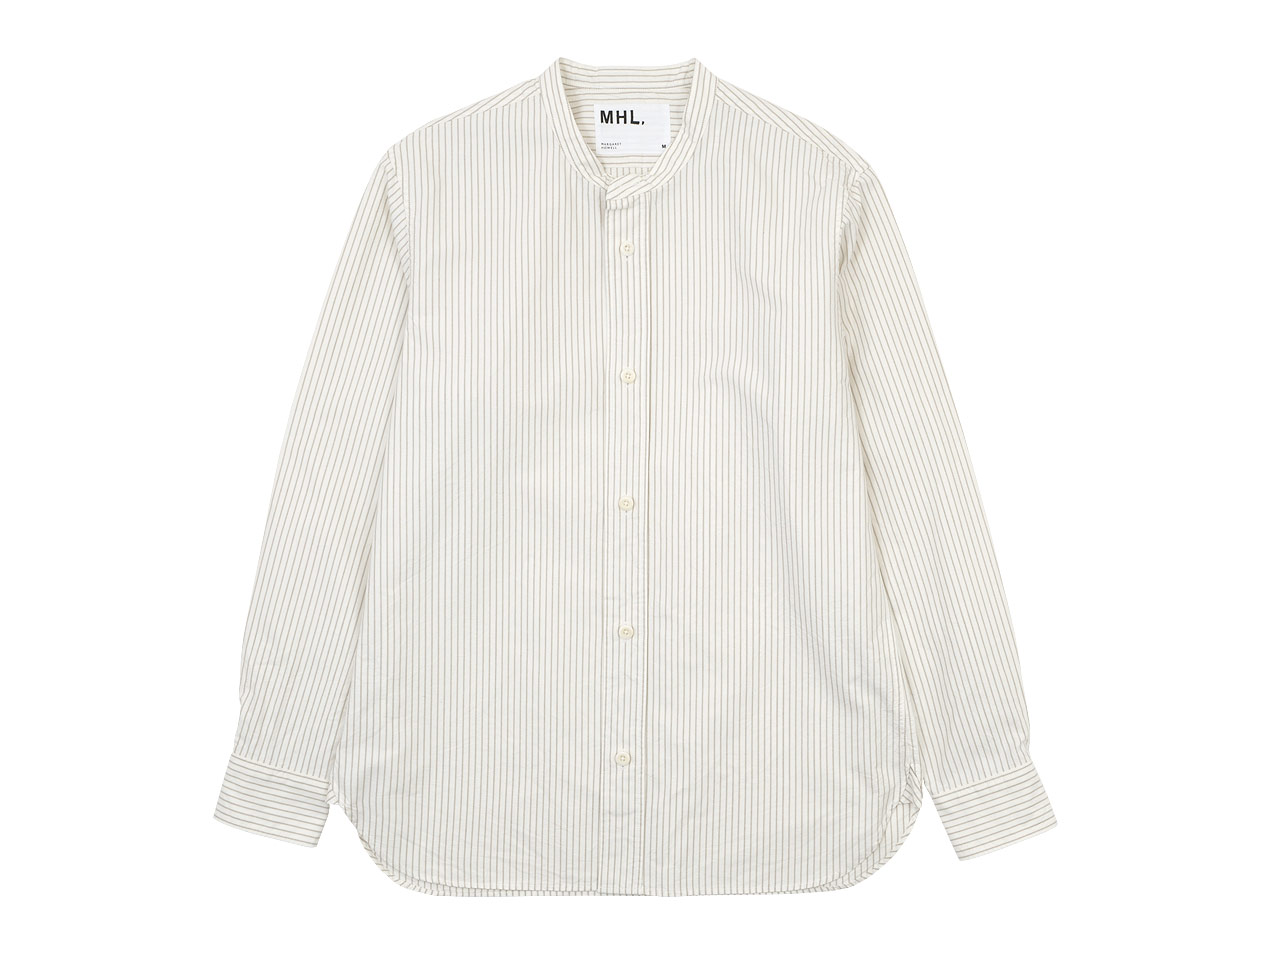 MHL. COMPACT COTTON STRIPE SHIRTS